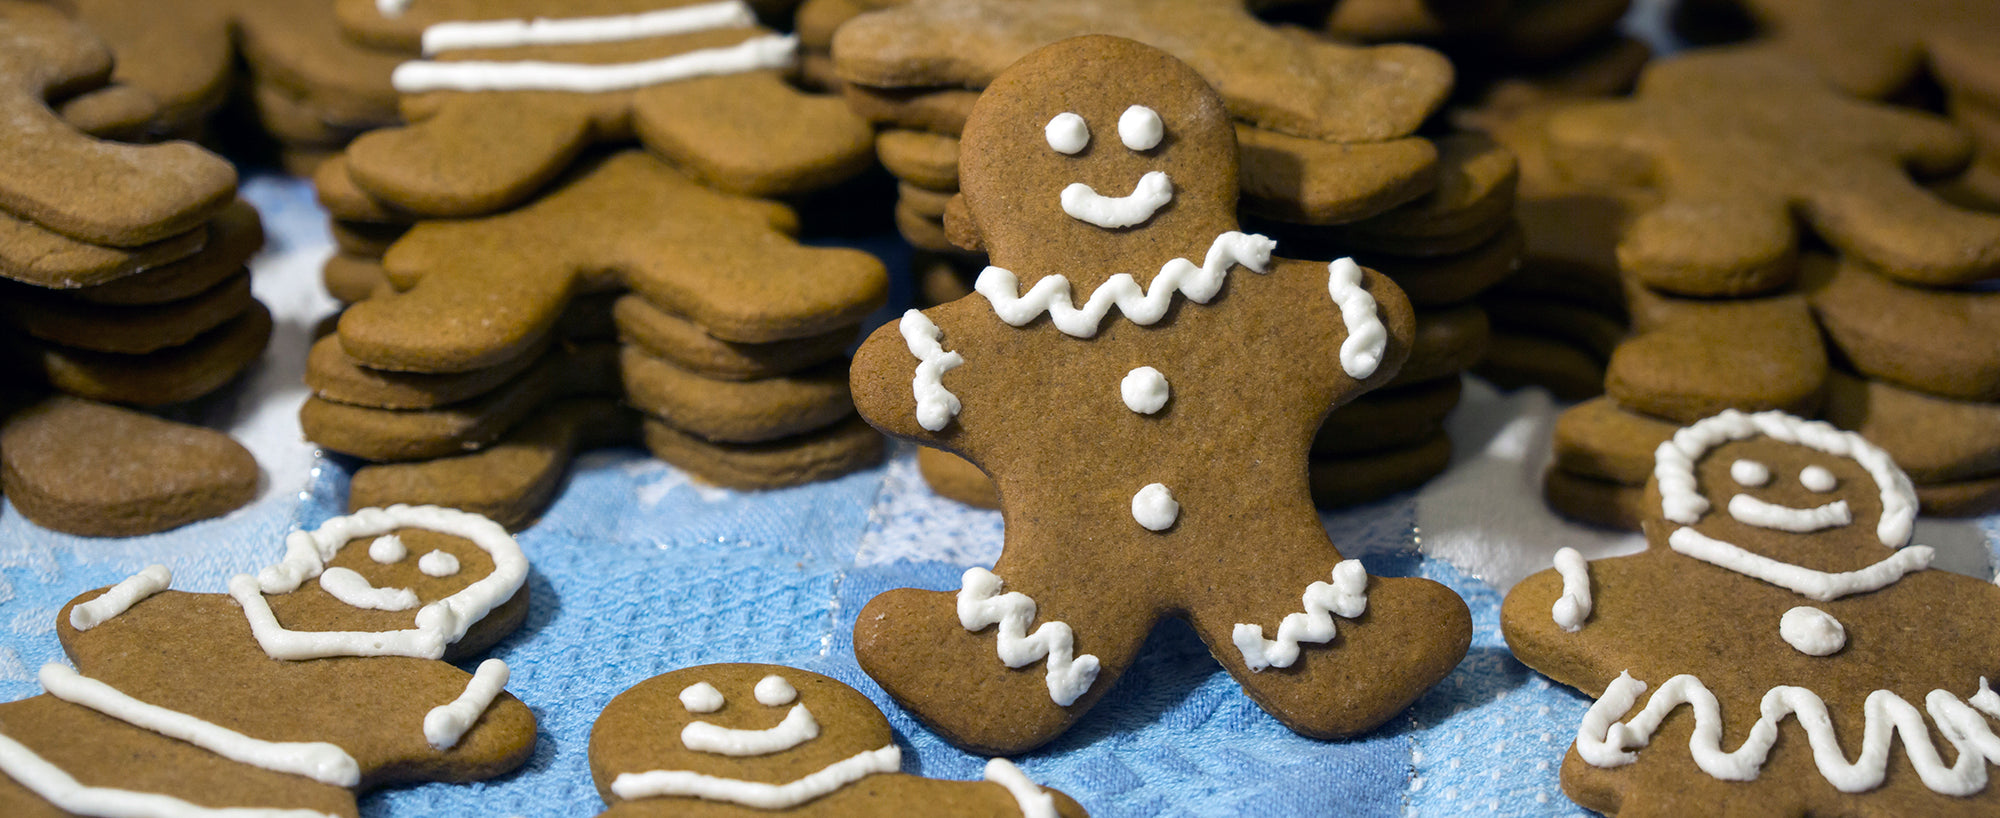 Gingerbread Men Christmas cookies